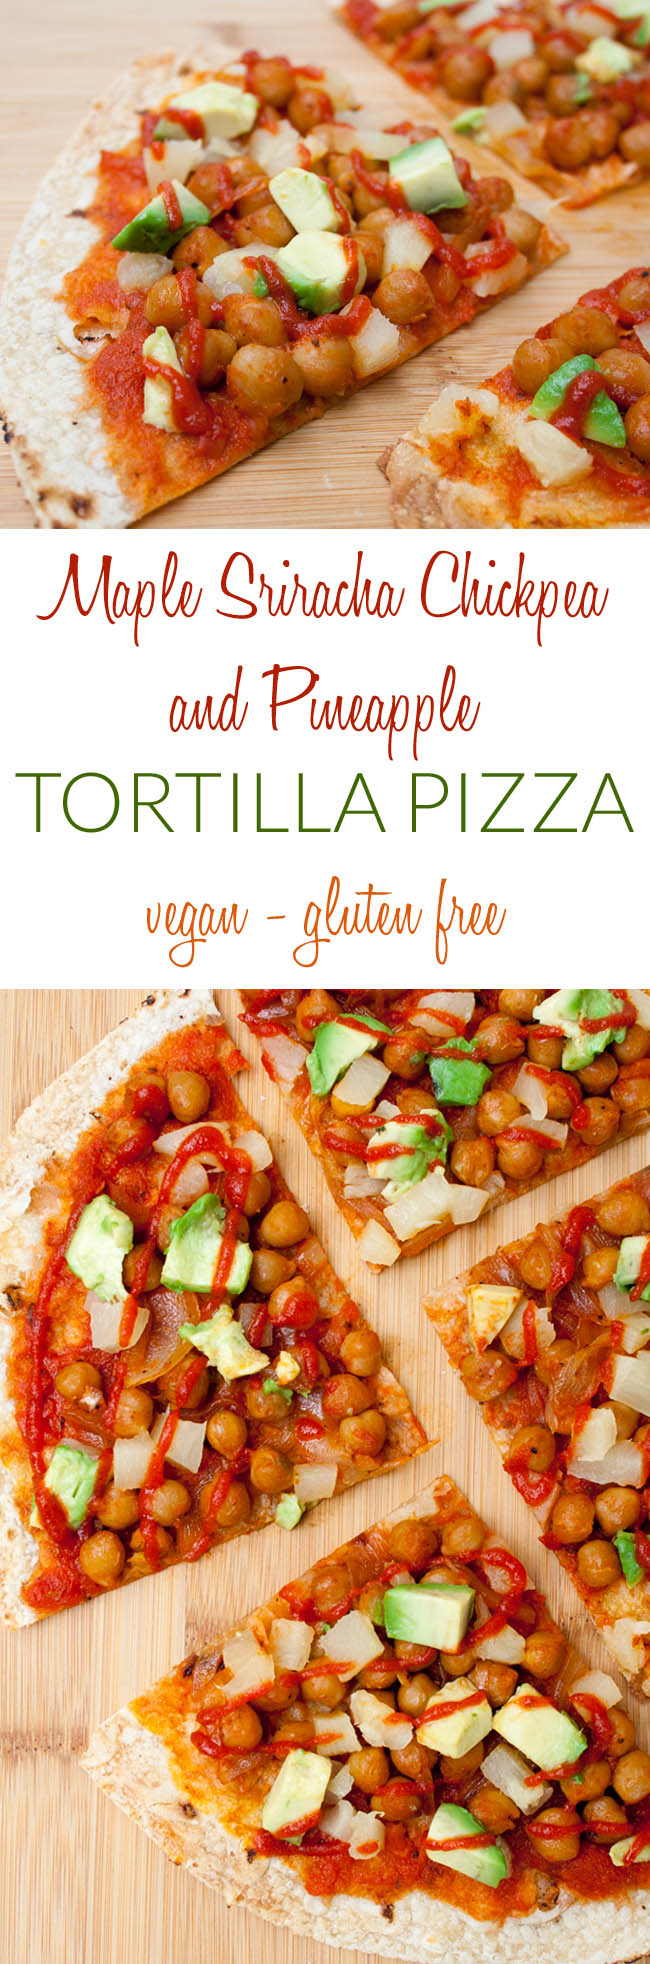 Maple Sriracha Chickpea and Pineapple Tortilla Pizza collage photo with text.